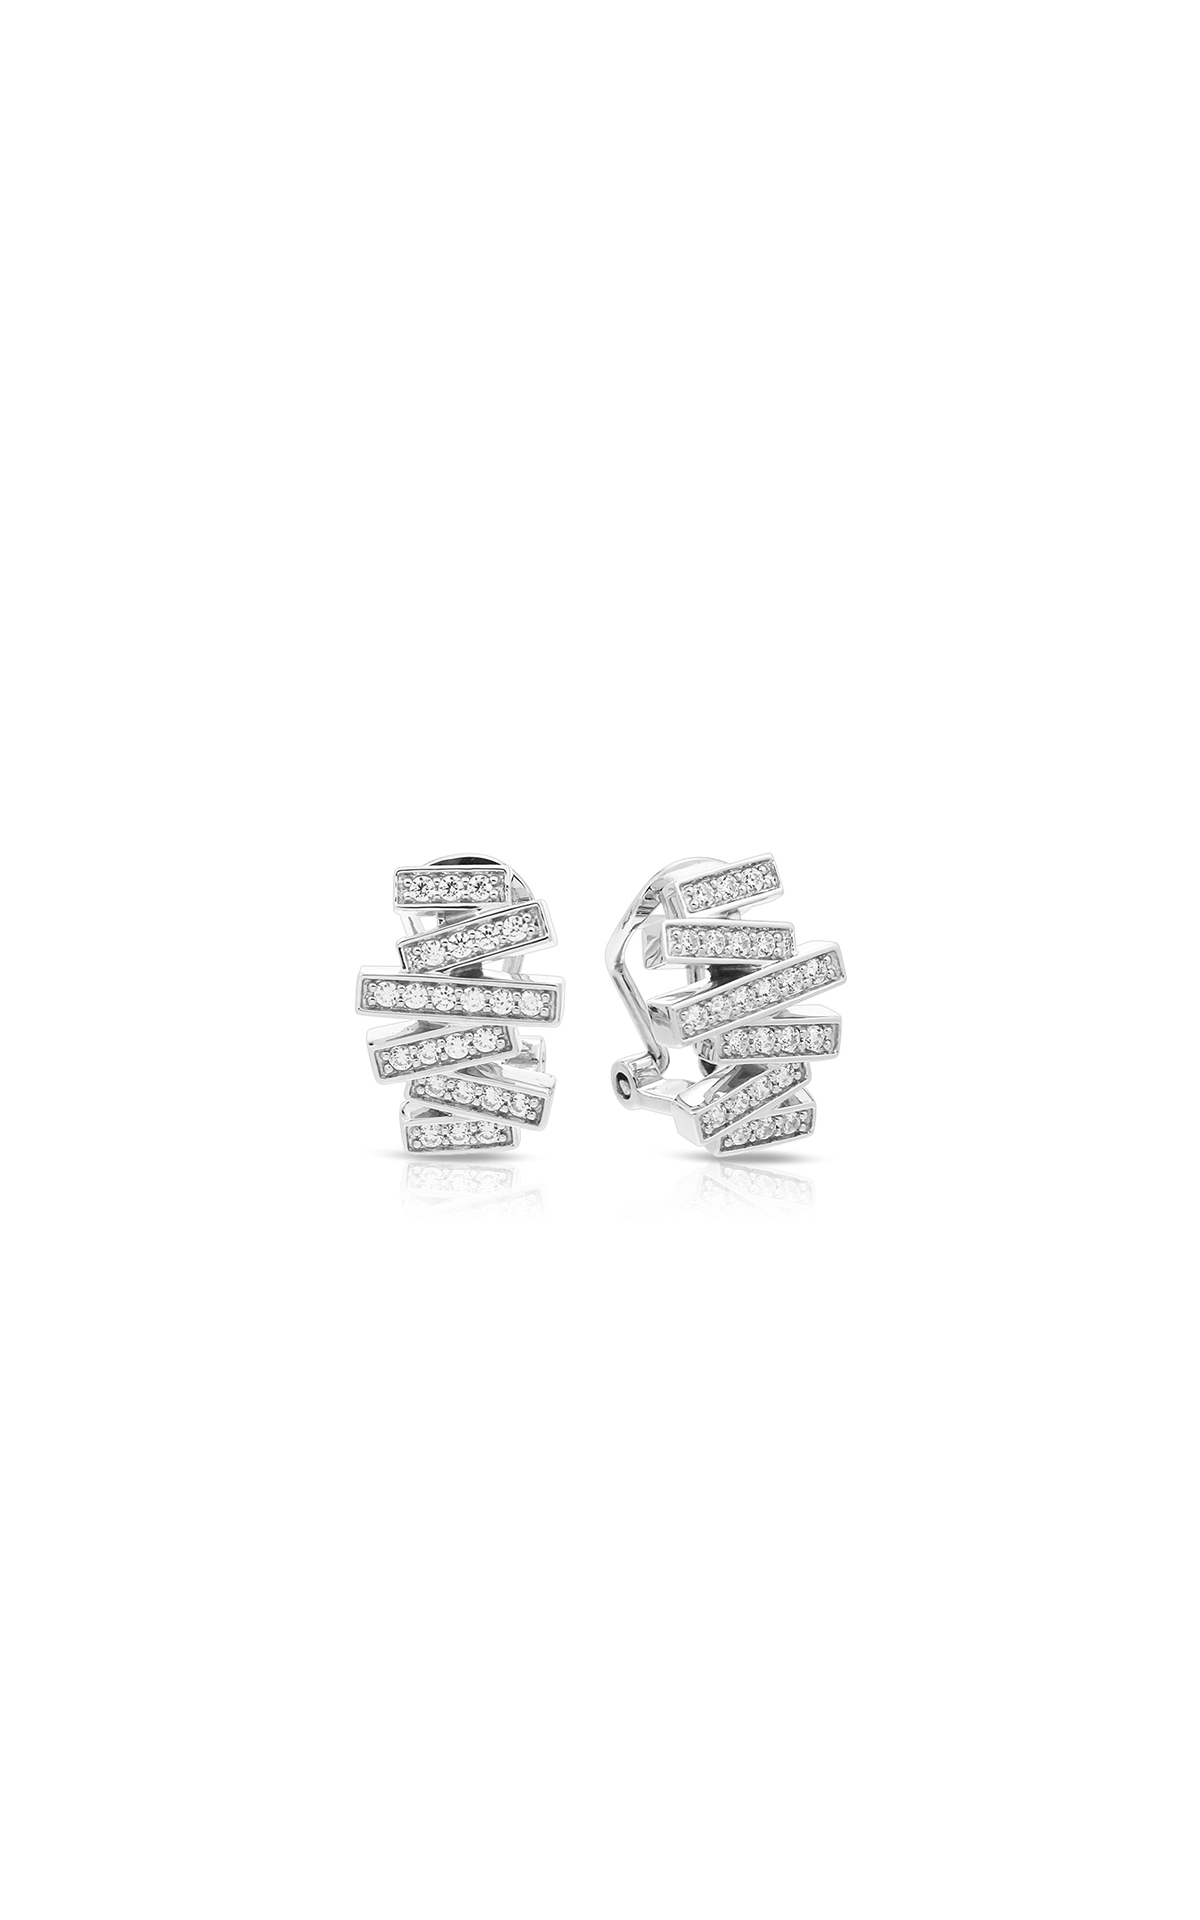 Belle Etoile Color Stone Monte Carlo Silver Earrings 3011620301 product image